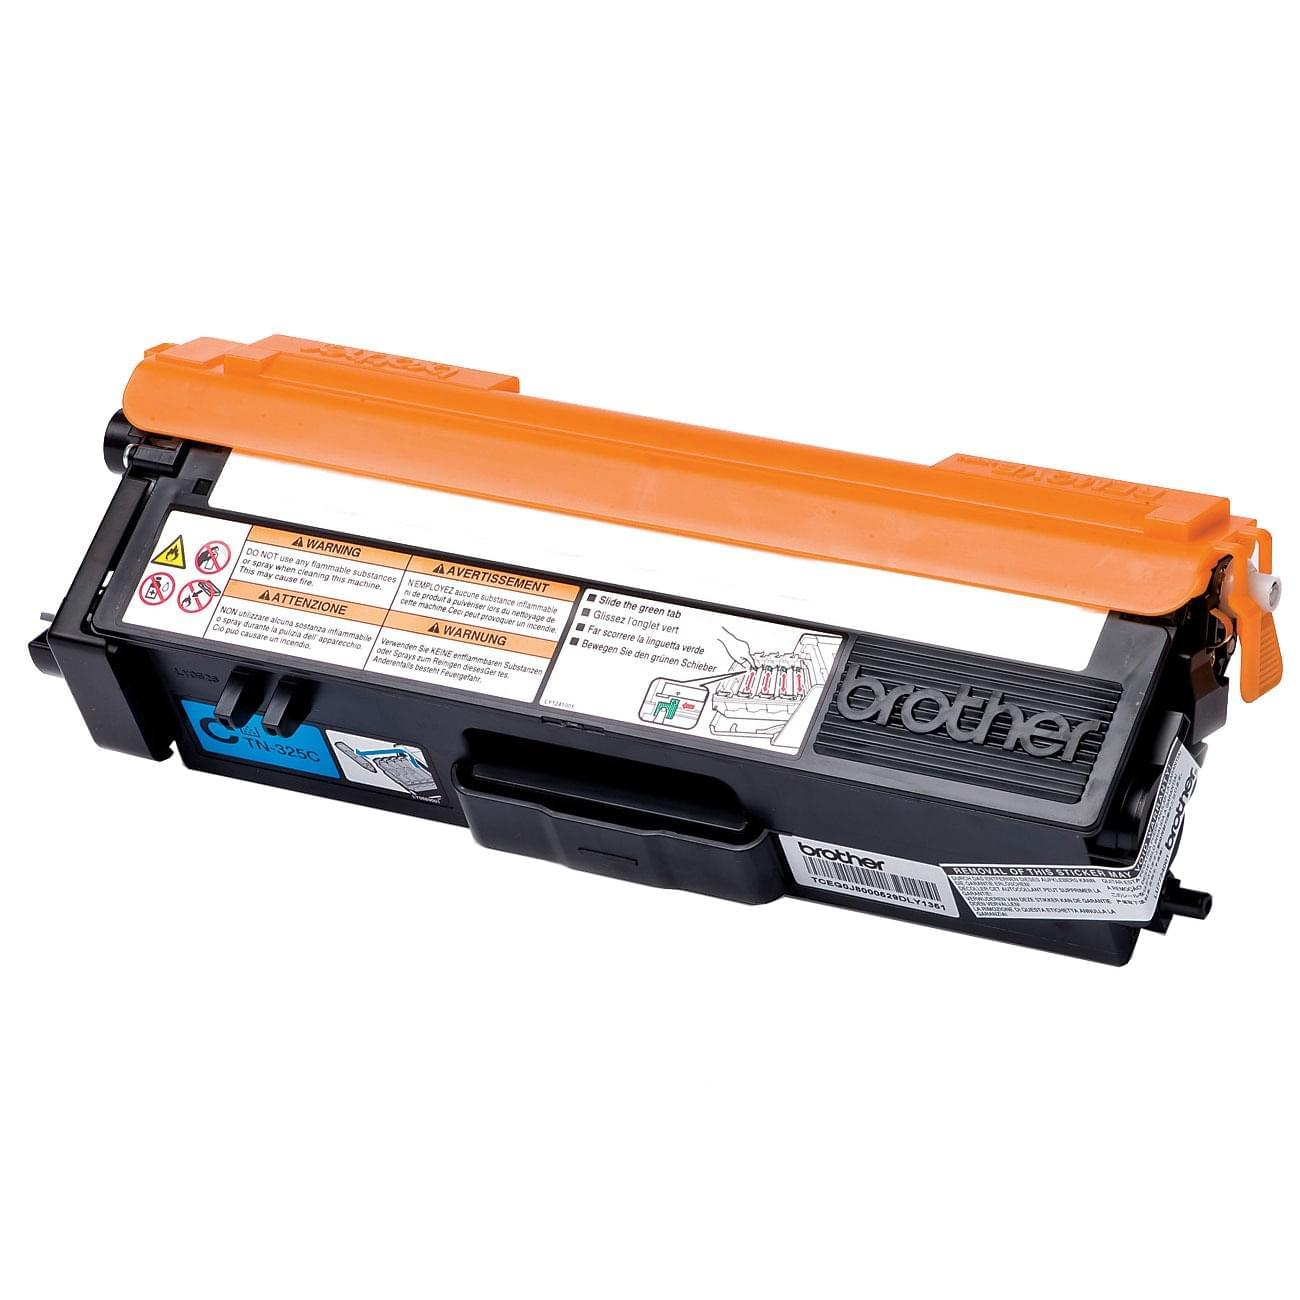 Toner TN320C Cyan - 1500p pour imprimante Laser Brother - 0